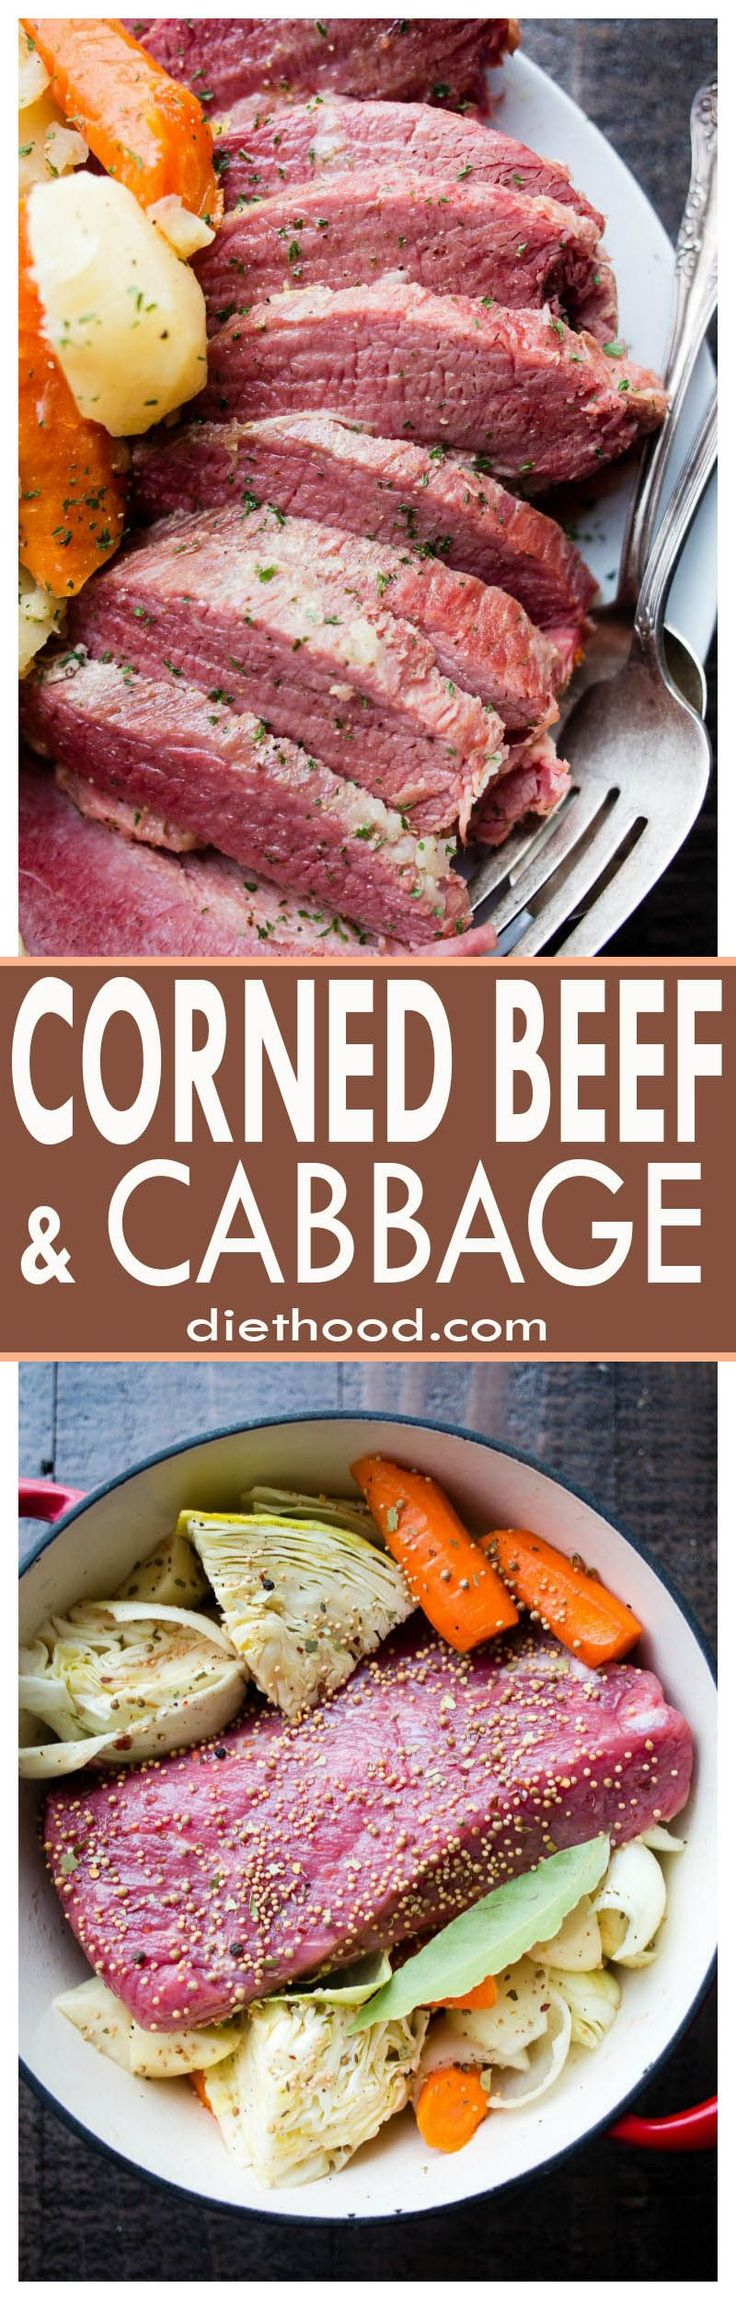 Corned Beef and Cabbage Recipe - This Corned Beef and Cabbage recipe packs all of its delicious flavors into a one pot meal that is warm, comforting, and SO flavorful!